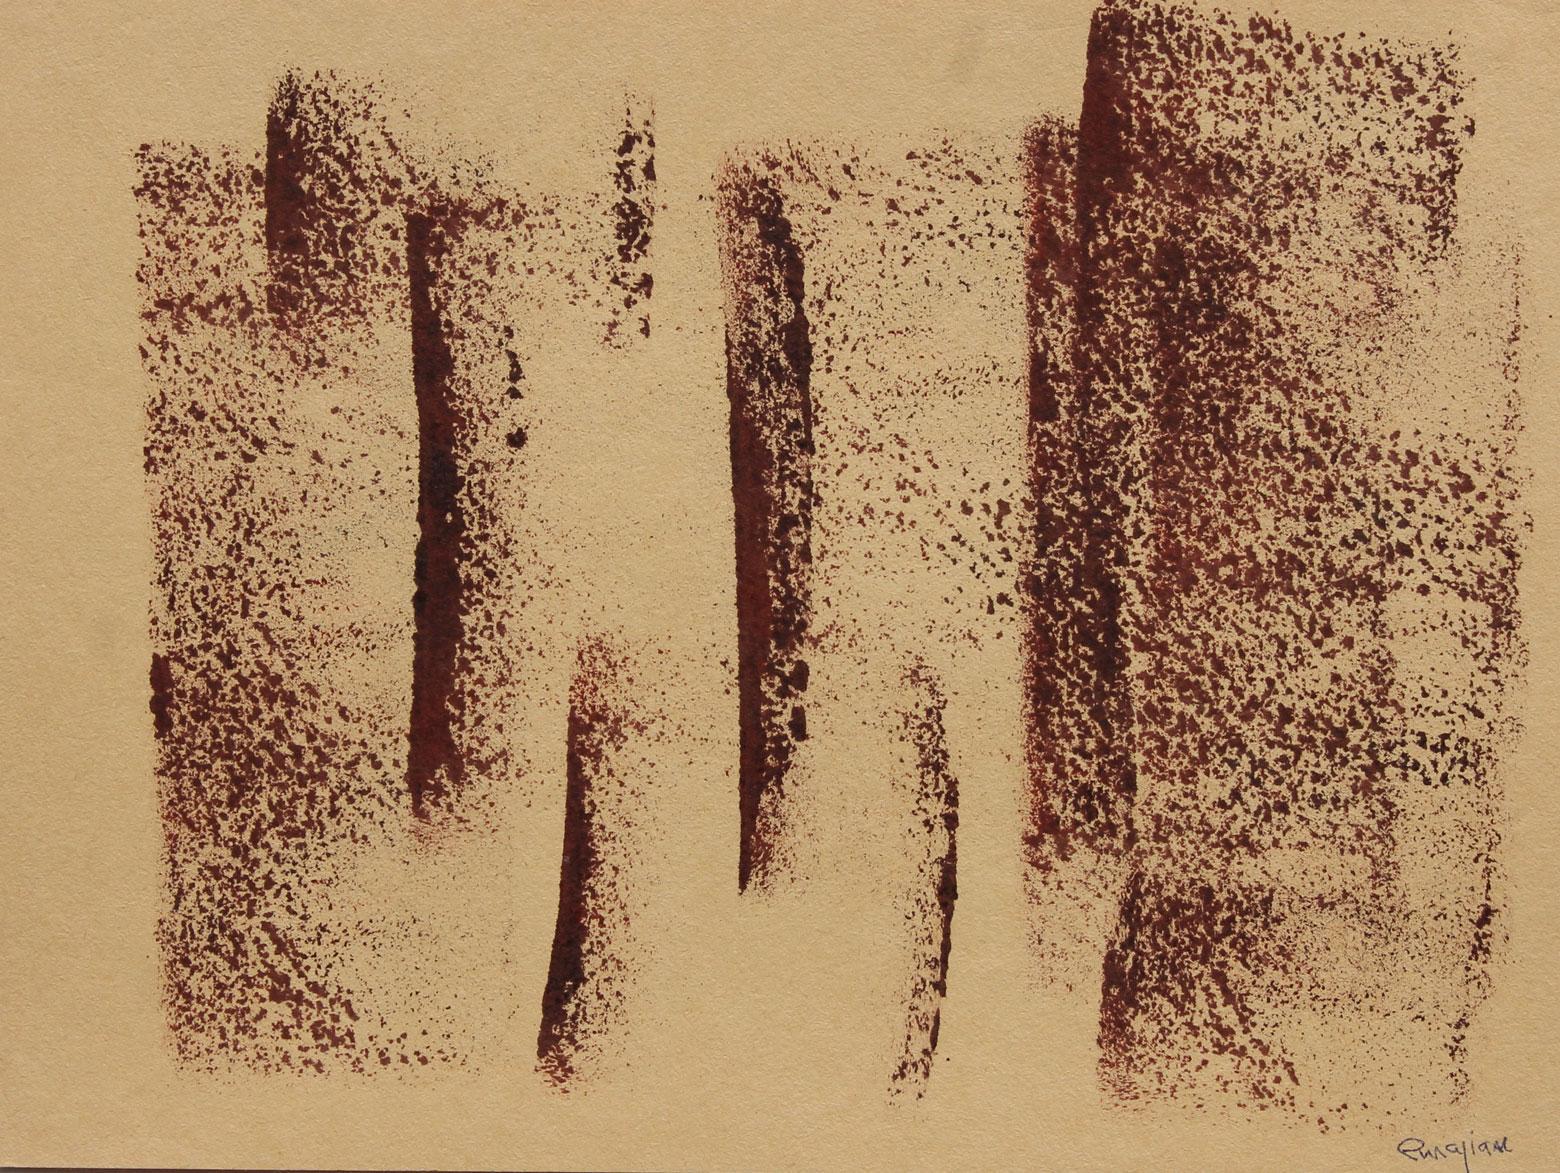 Abstract landscape, Untitled, archived No. 4056